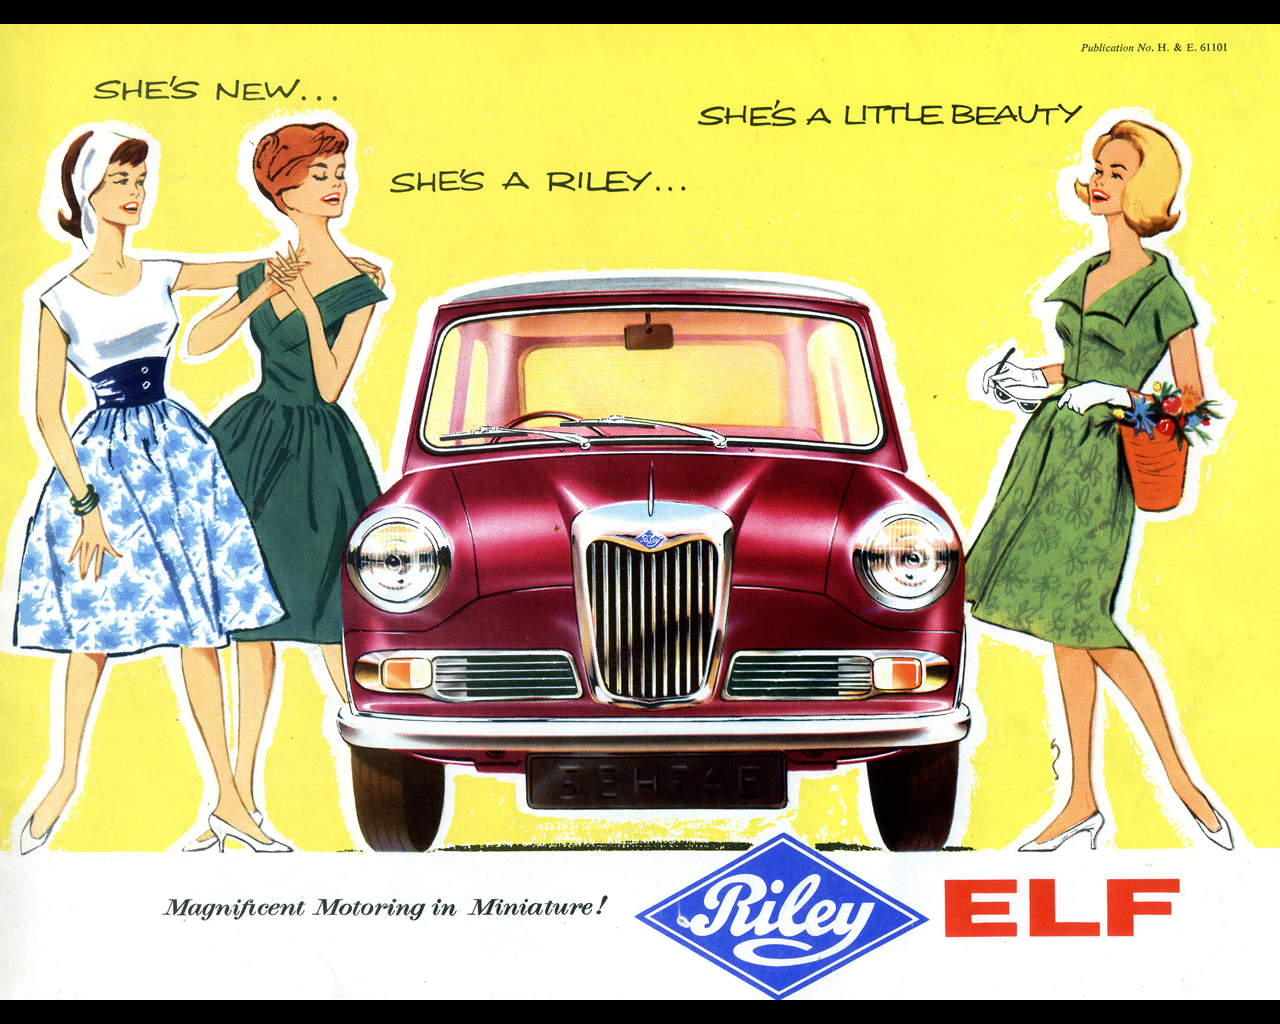 Sixties advertising for the Riley Elf was often aimed at women seeking a stylish small car. (Picture courtesy autoconcept-reviews.com)